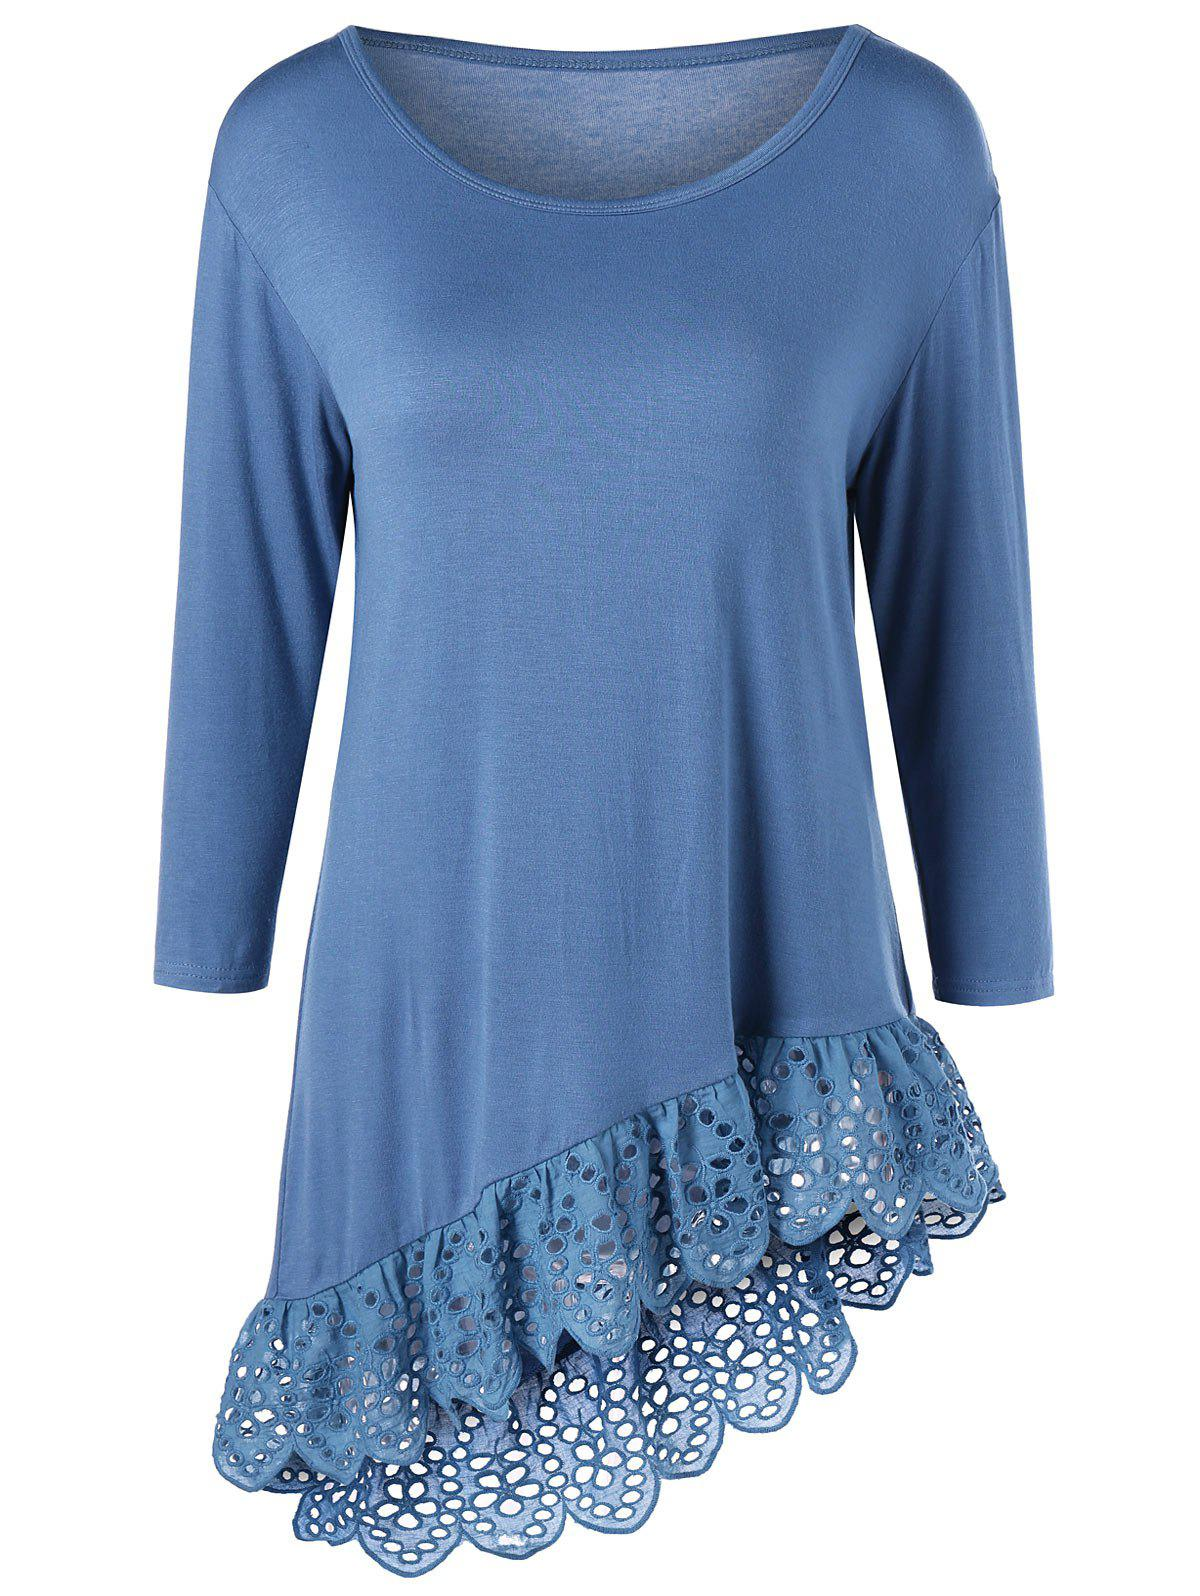 Fancy Broderie Openwork Scalloped Edge Asymmetrical T-Shirt